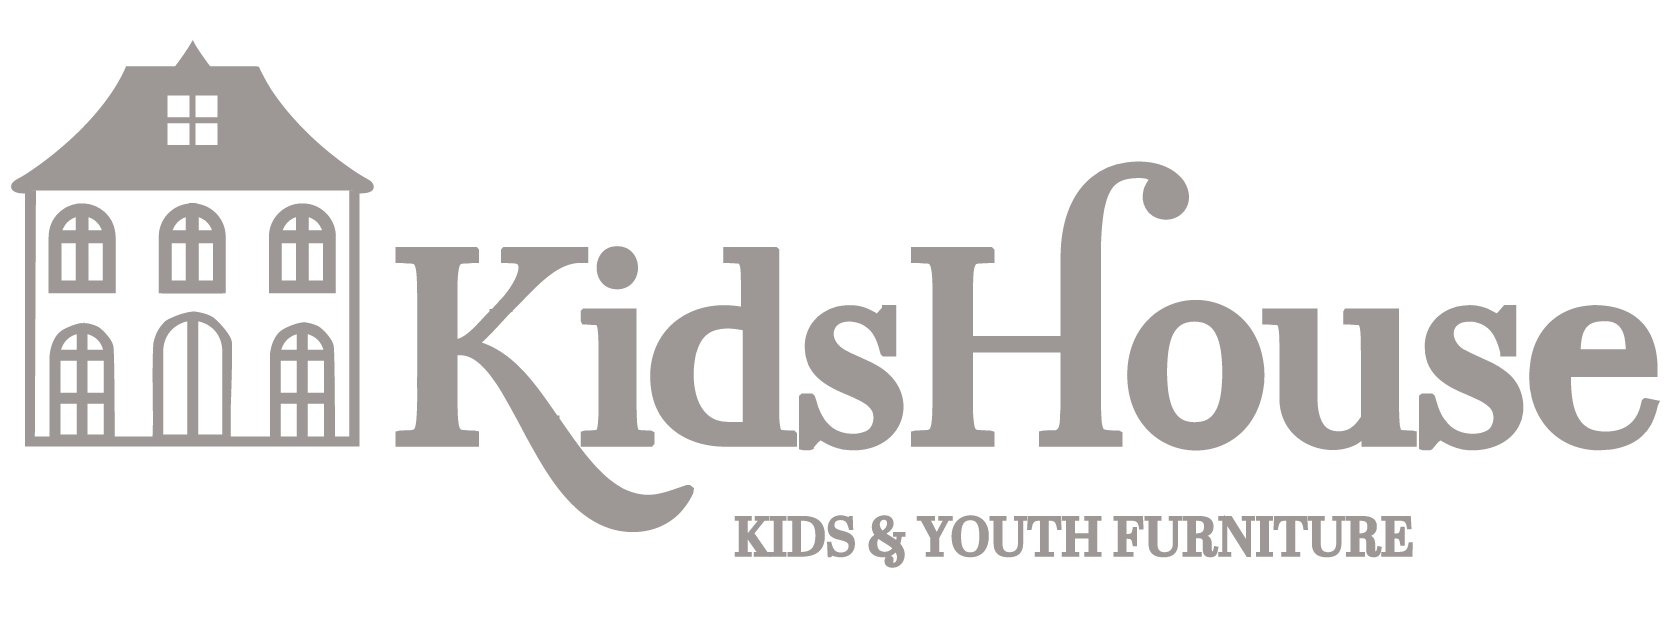 logo kids house